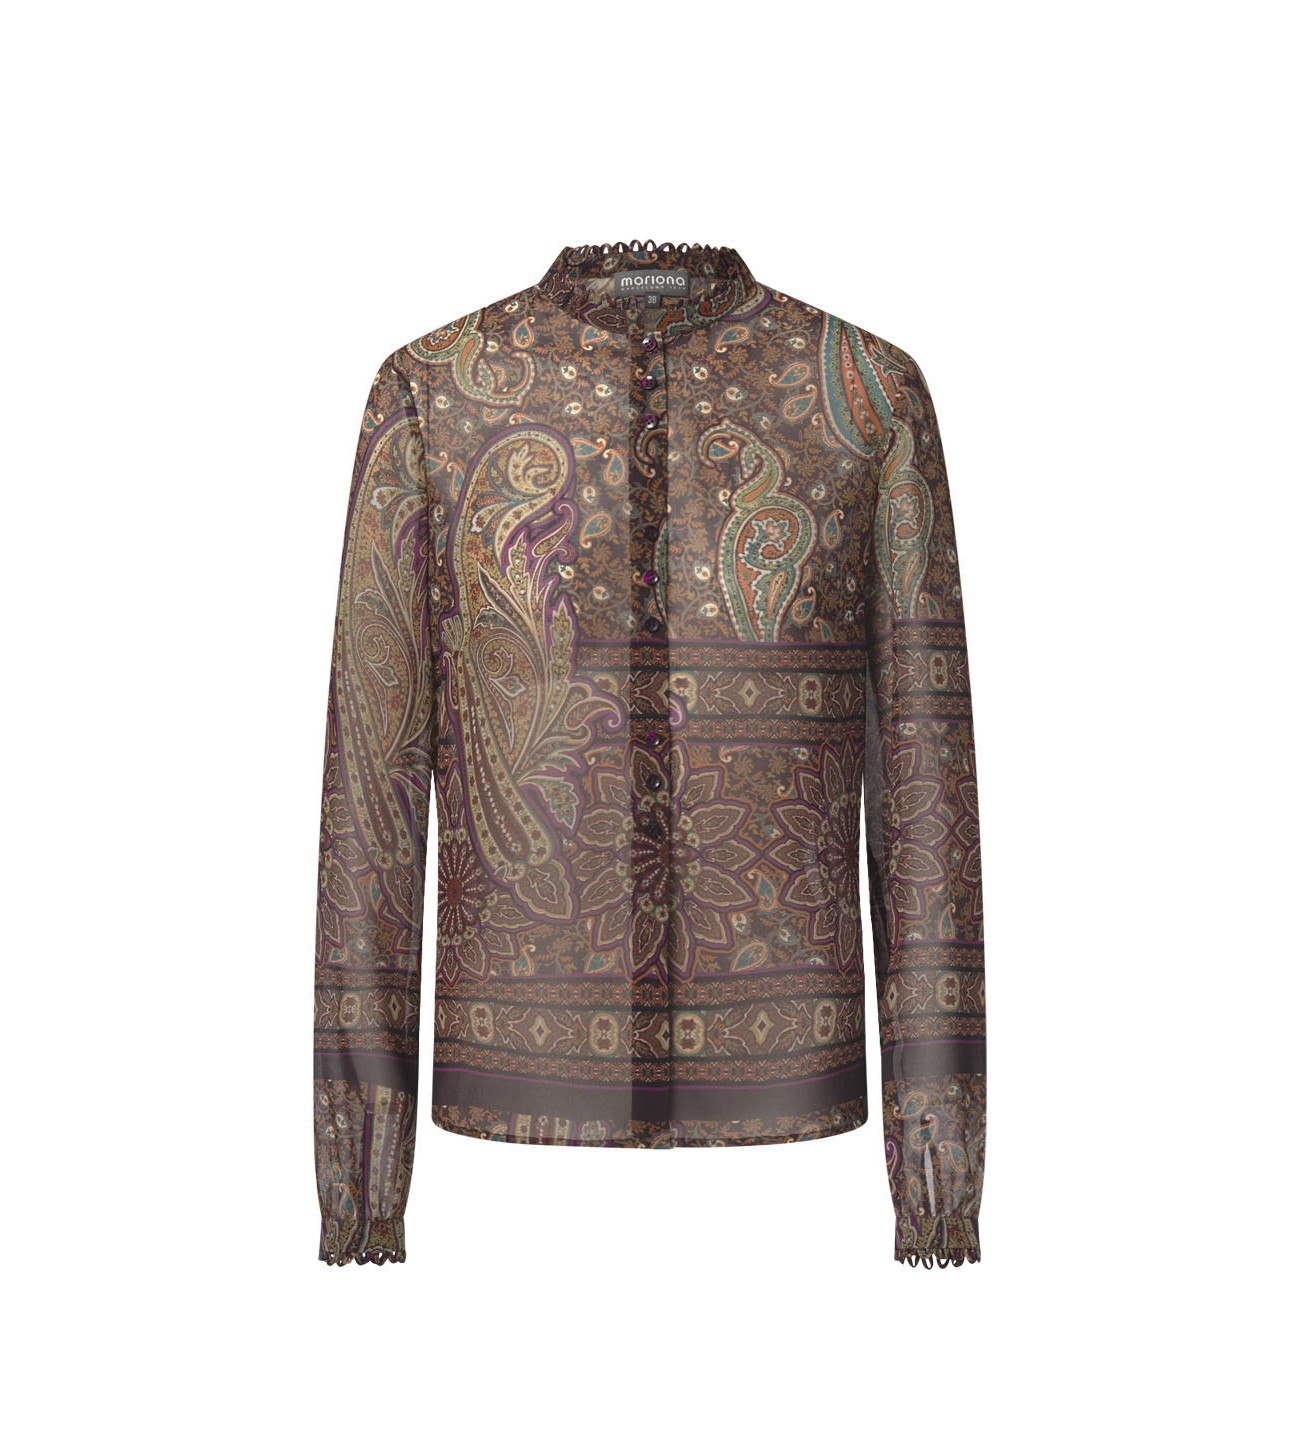 MARIONA_PRINTED_LONG_SLEEVE_SHIRT_MARIONA_FASHION_CLOTHING_WOMAN_SHOP_ONLINE_5124H